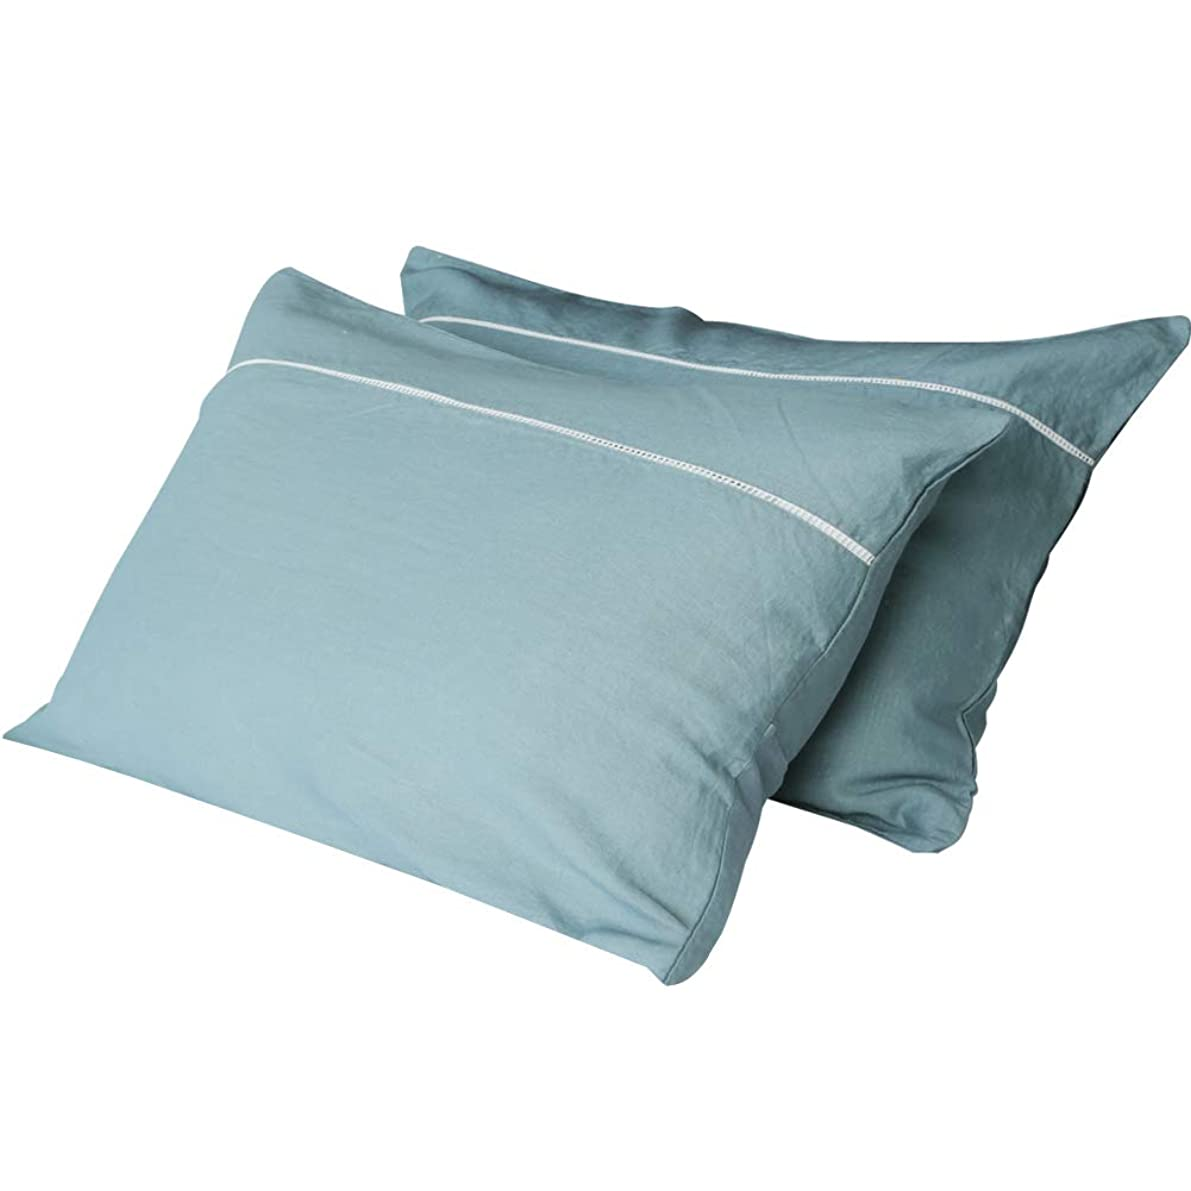 AVEYAL Premium Pillowcase Set Pure Linen Pillow Cases with Hidden Zipper Luxury Hotel Quality Pillow Covers Natural Flax(Set of 2 Queen Size, Lake Blue)